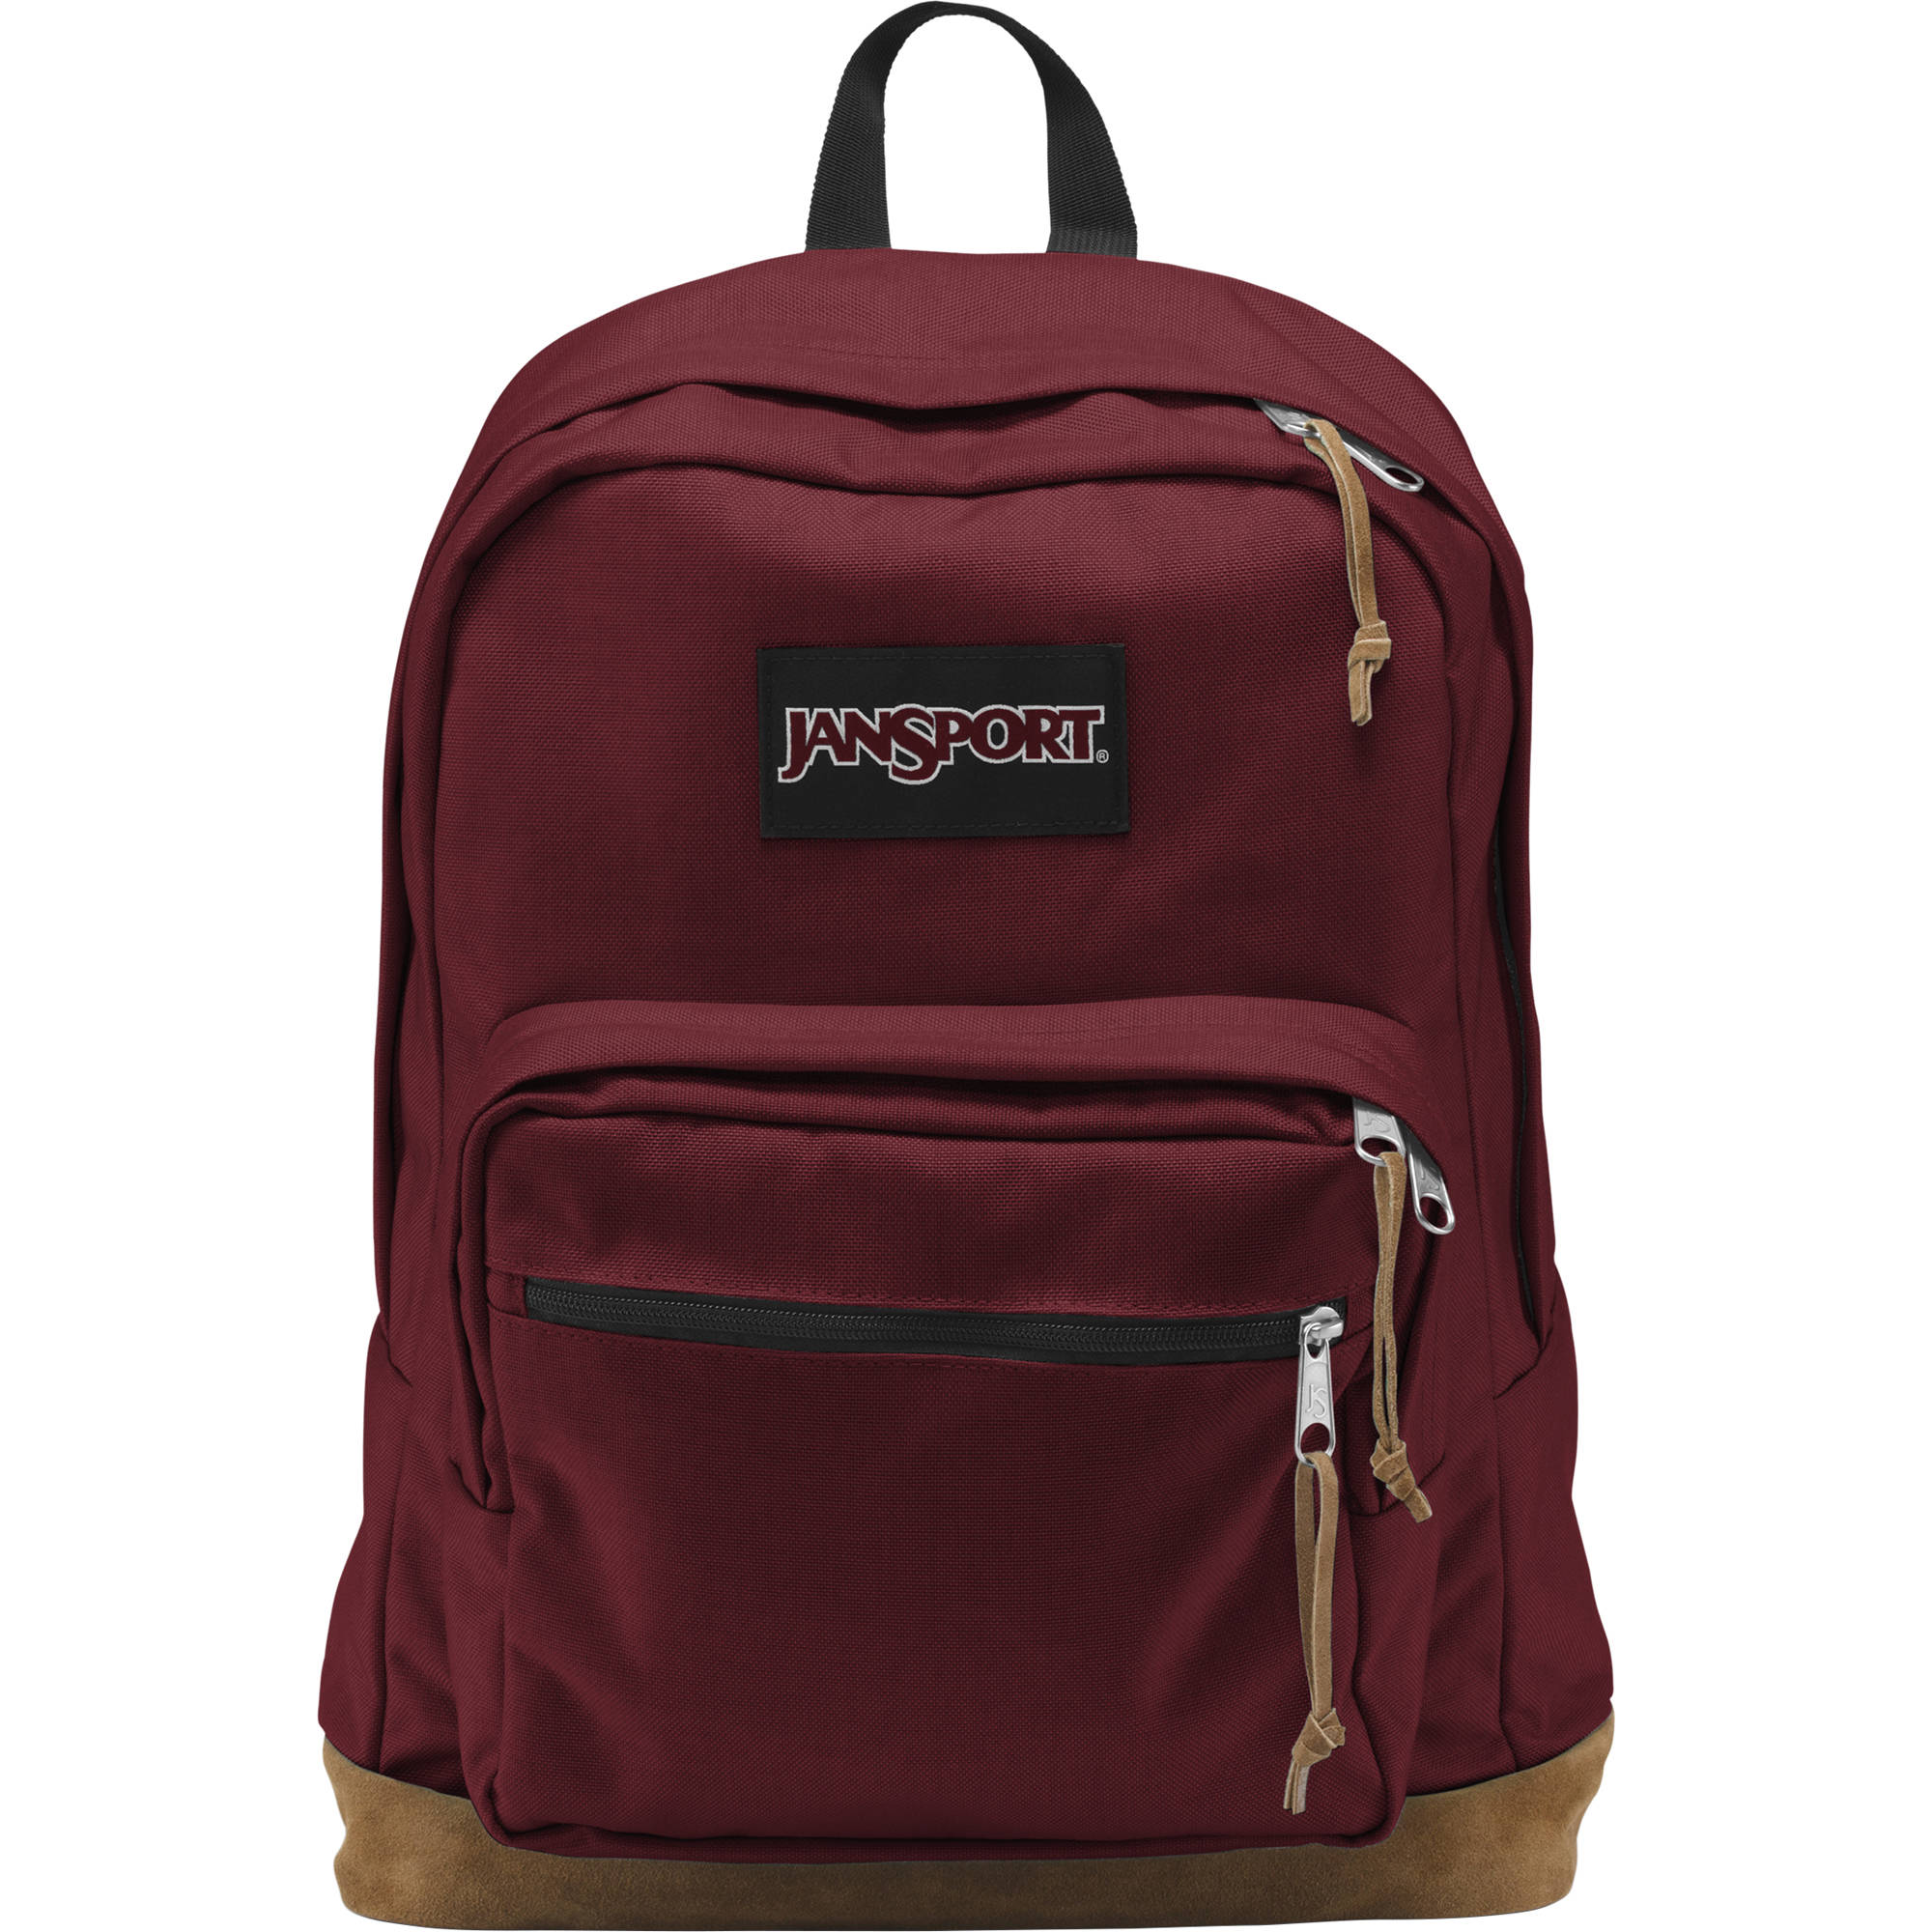 how to pack a jansport hiking backpack